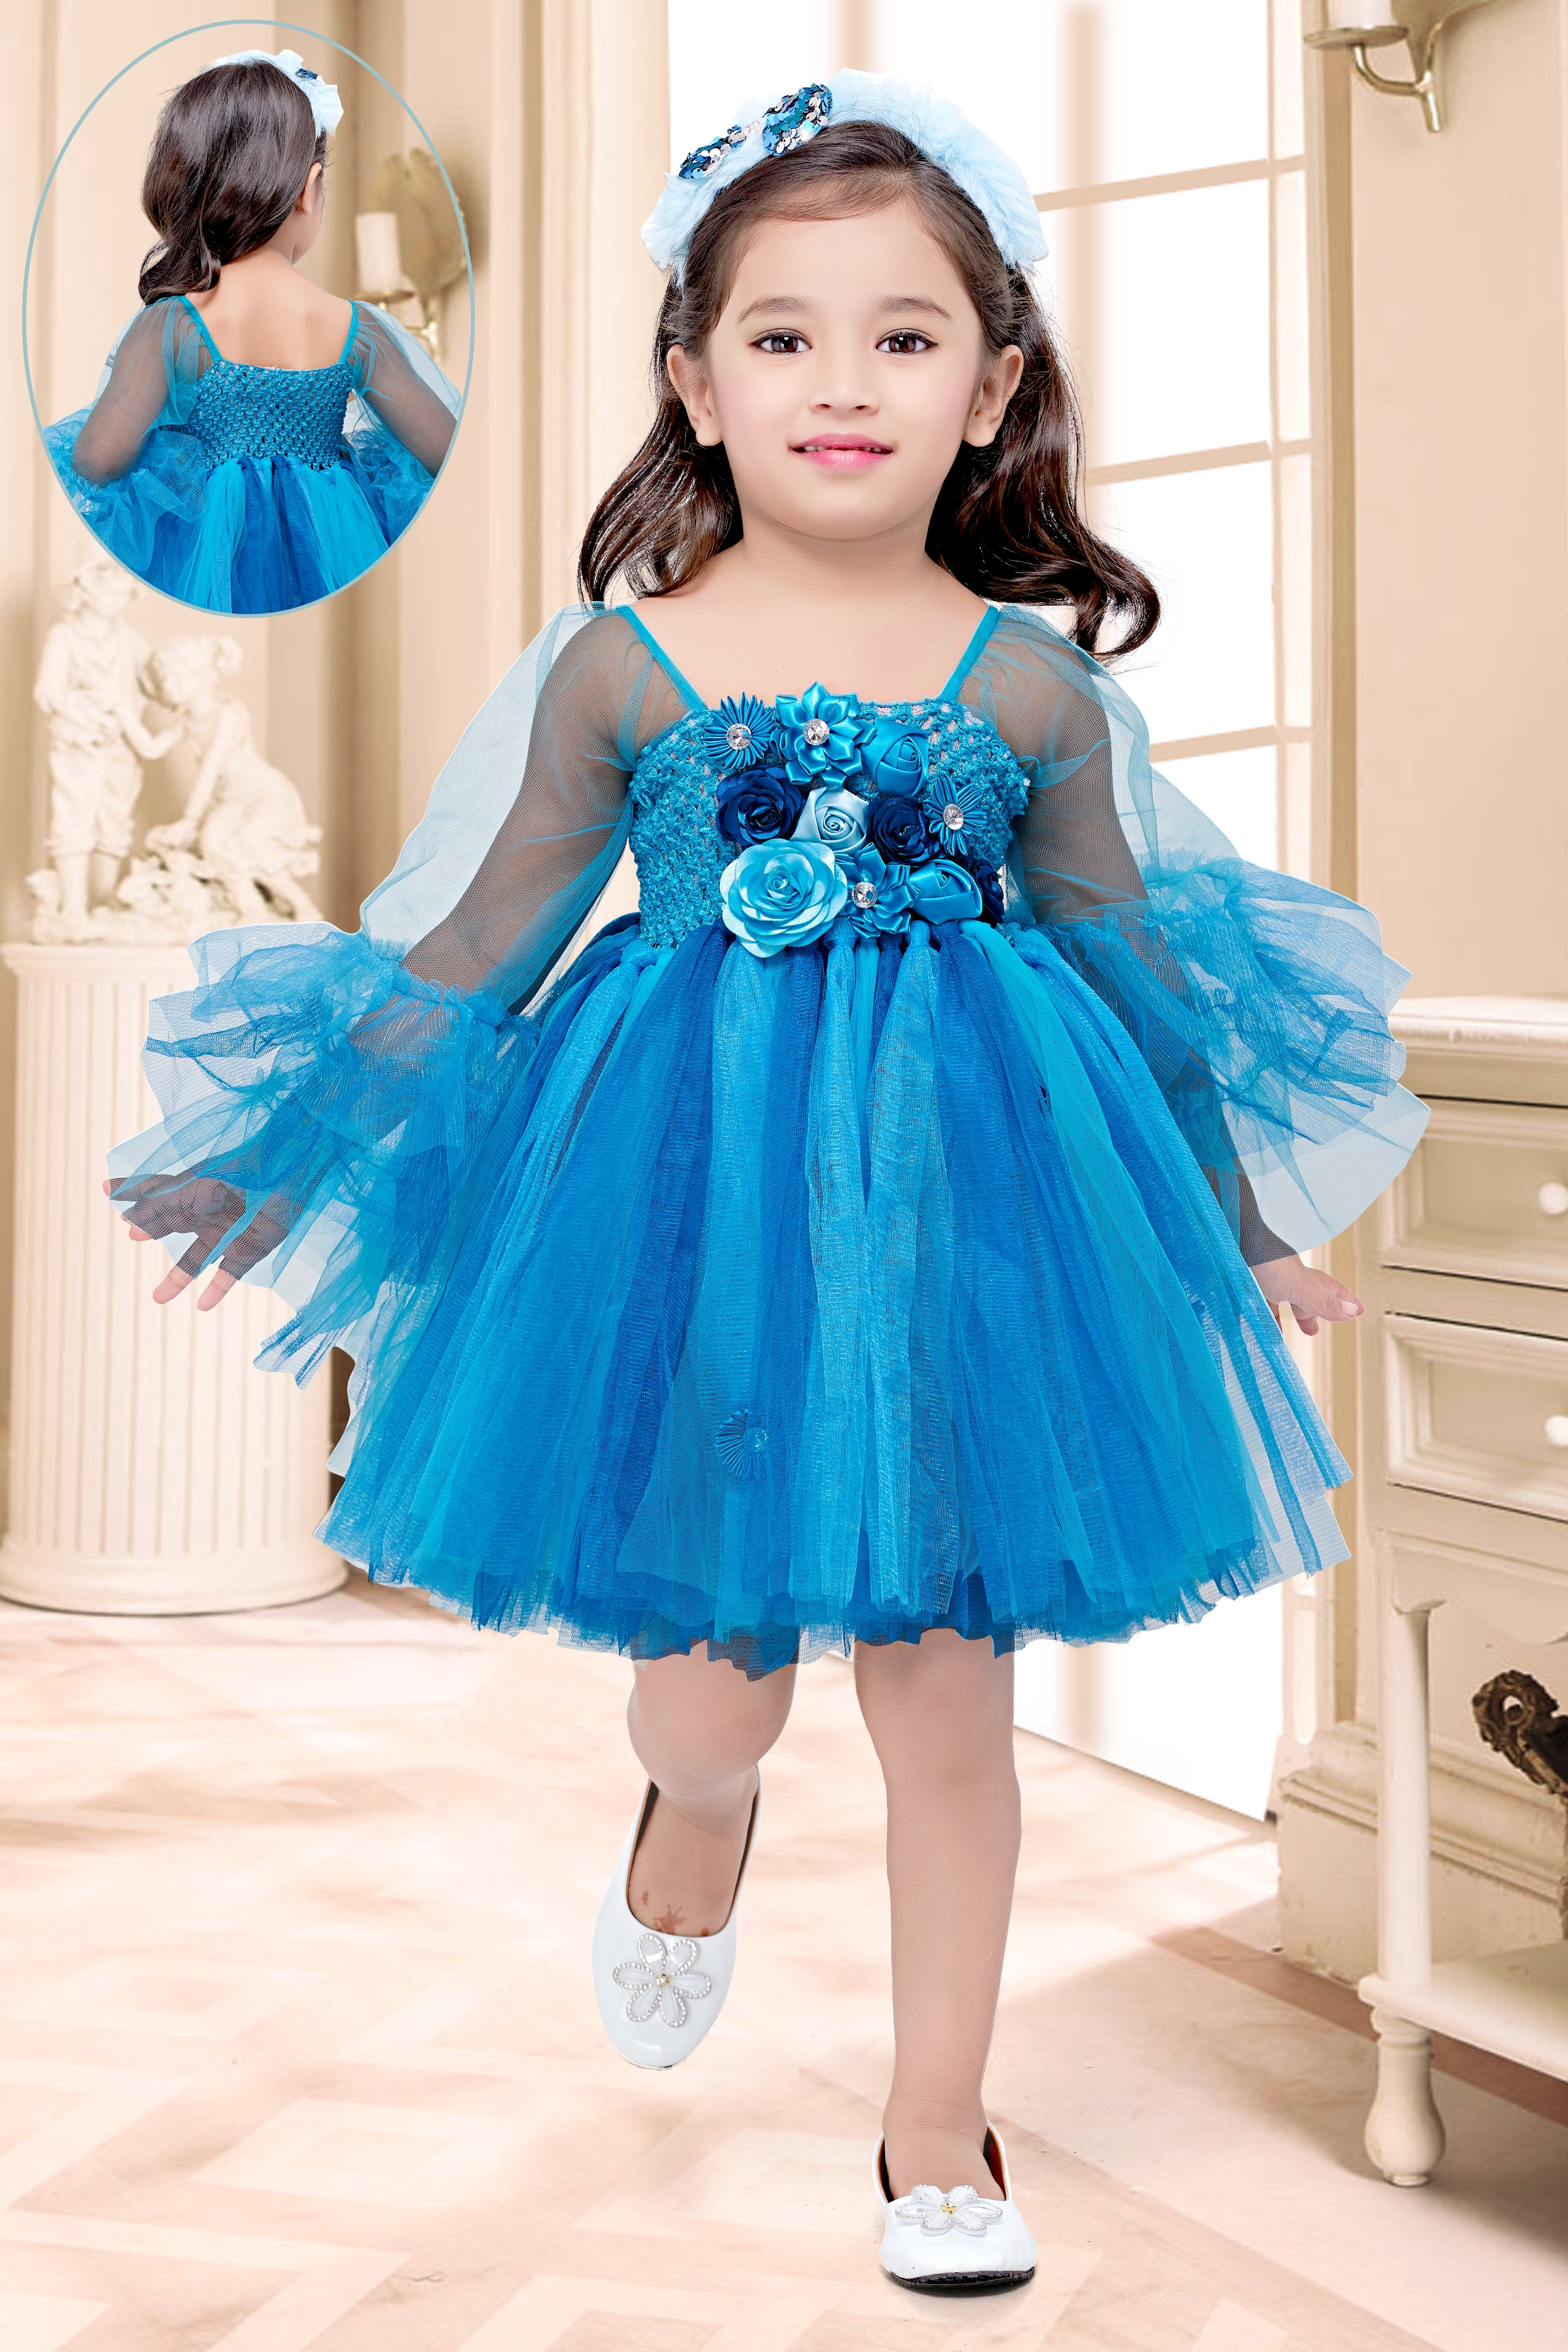 Blue Mania Frock